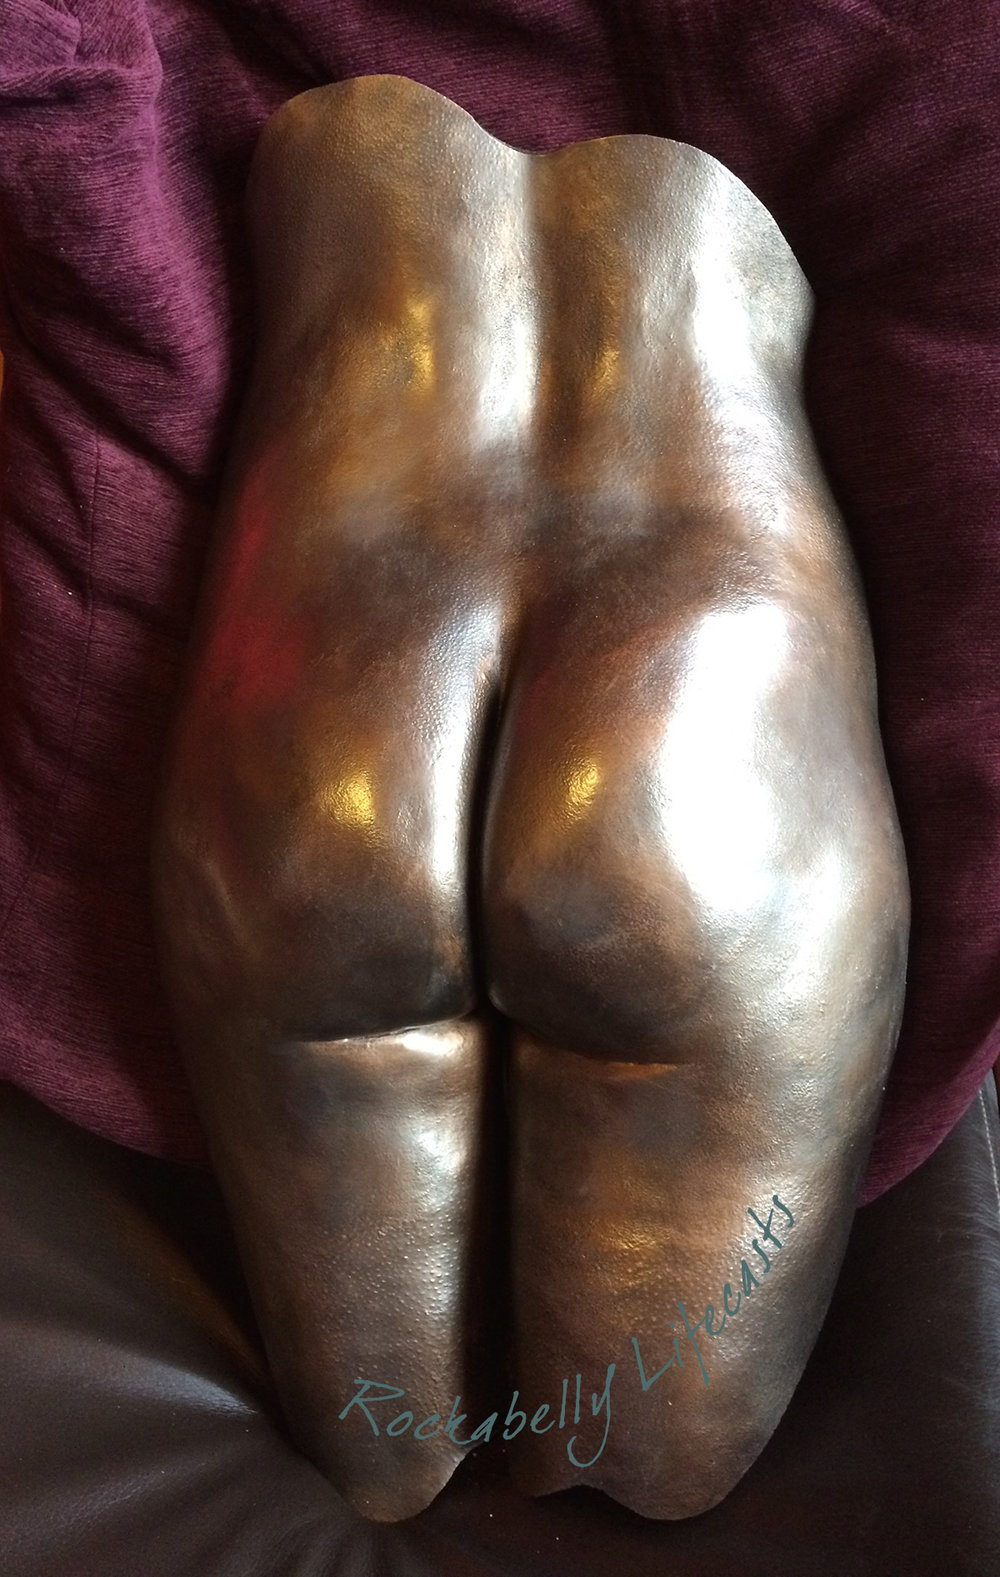 Rockabelly female bronze bottom casting